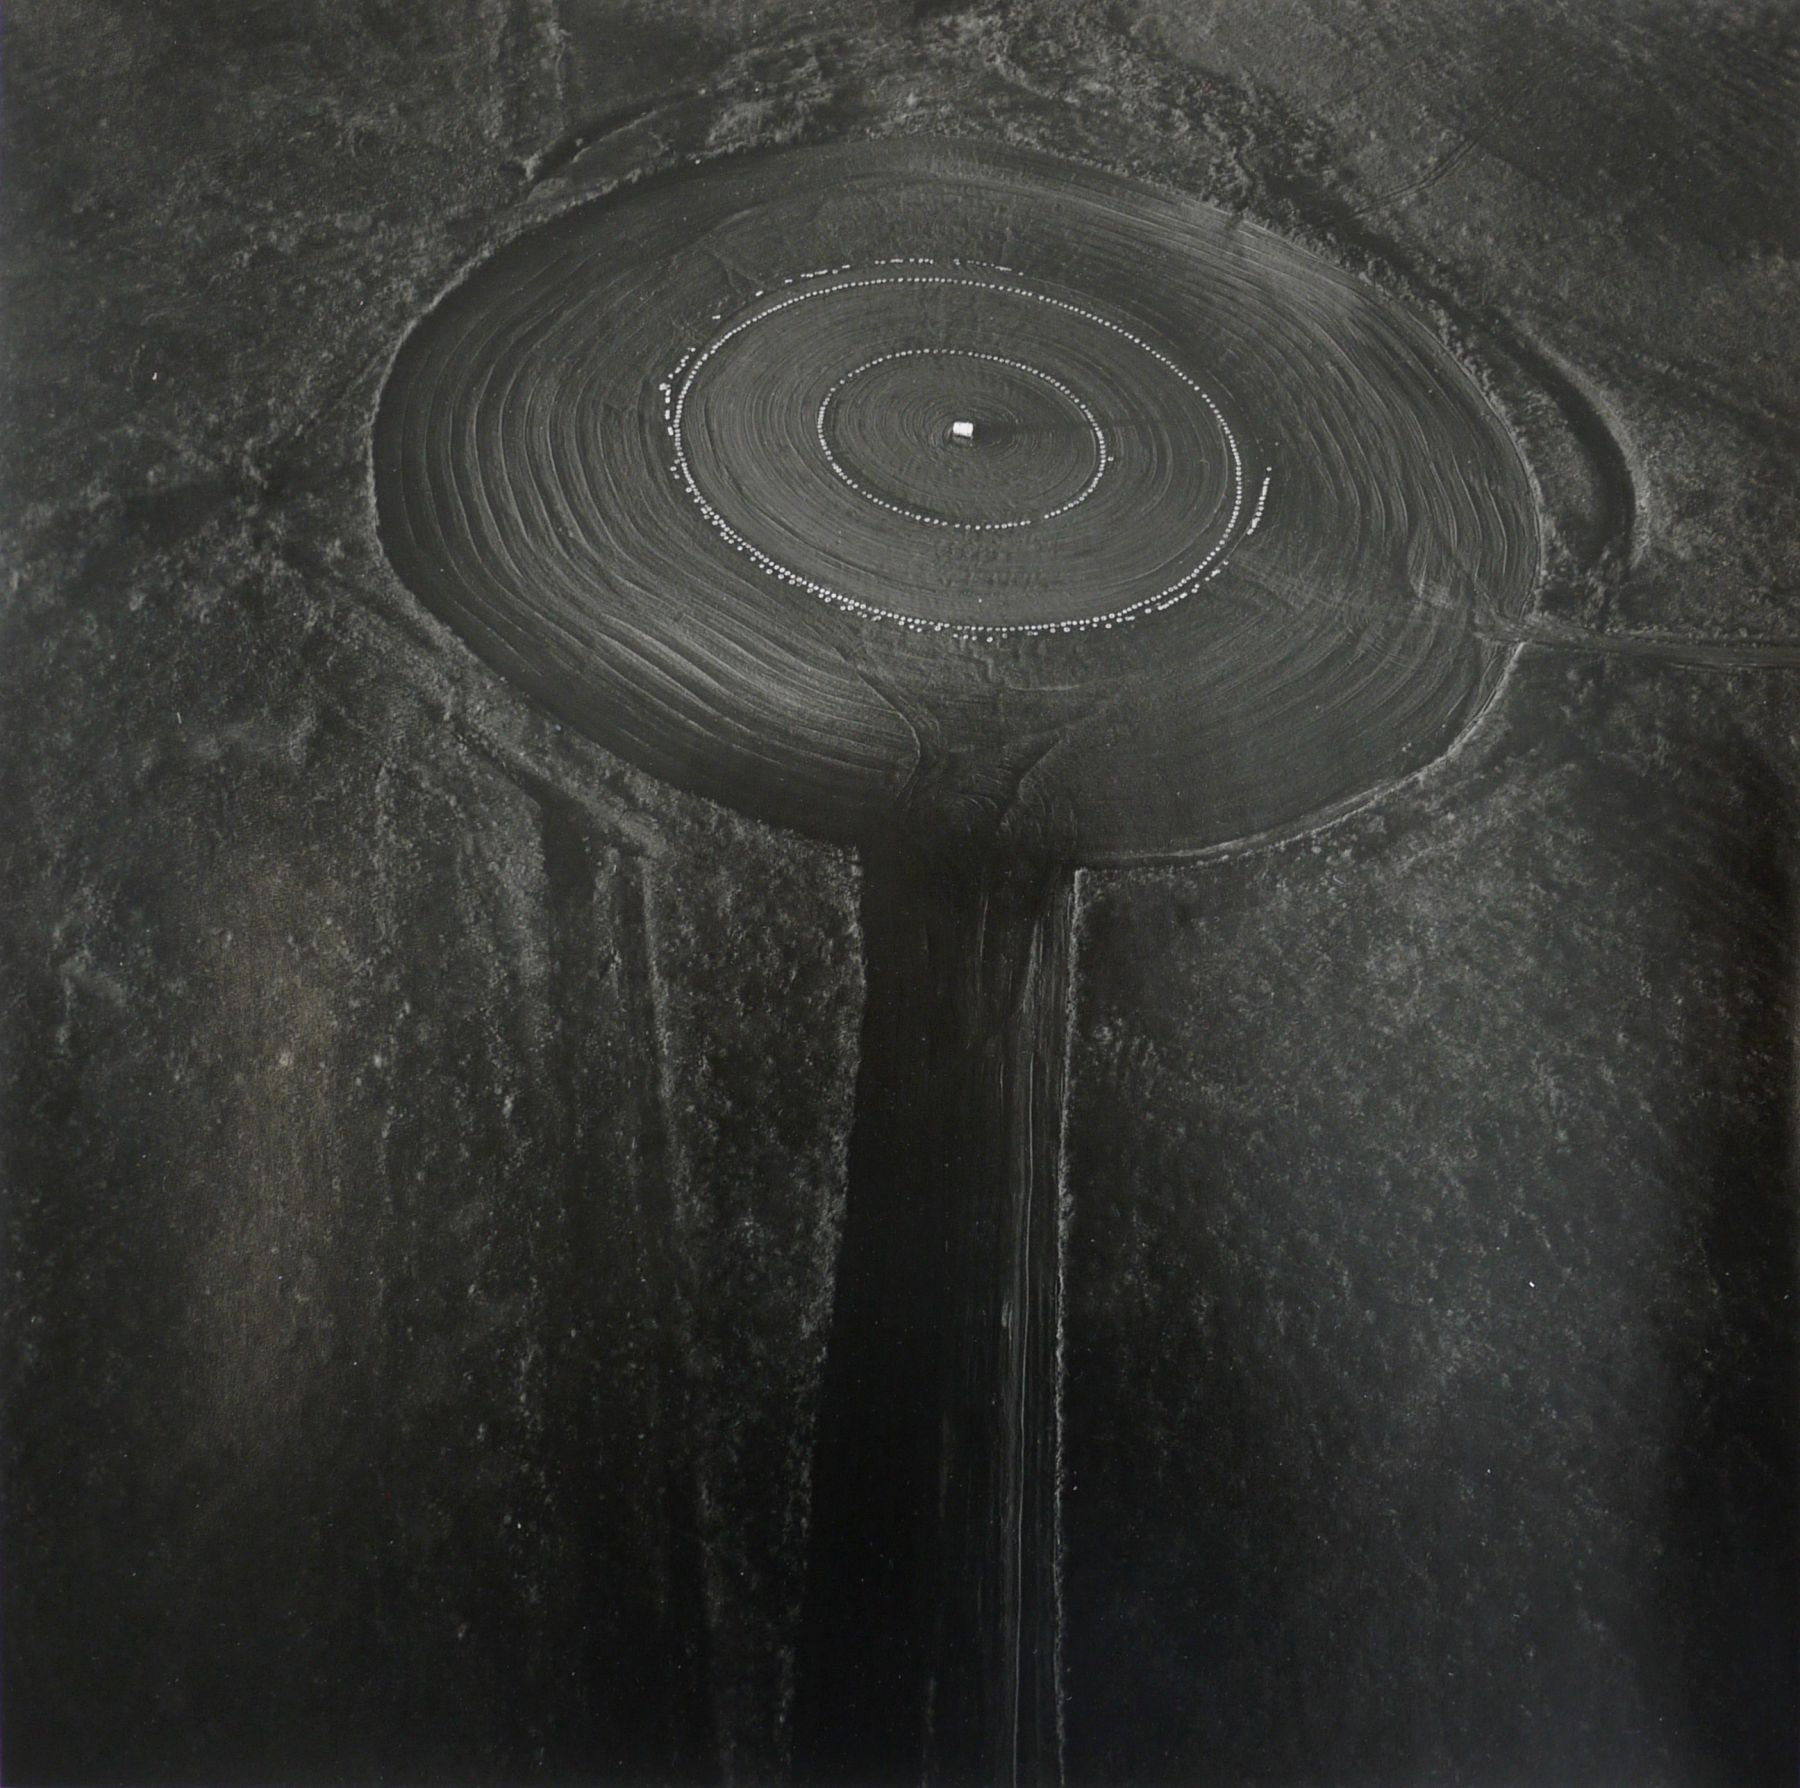 Smoky Hill Weapons Range Target: Tires, September 30, 1990, 15 x 15 inch gelatin silver print